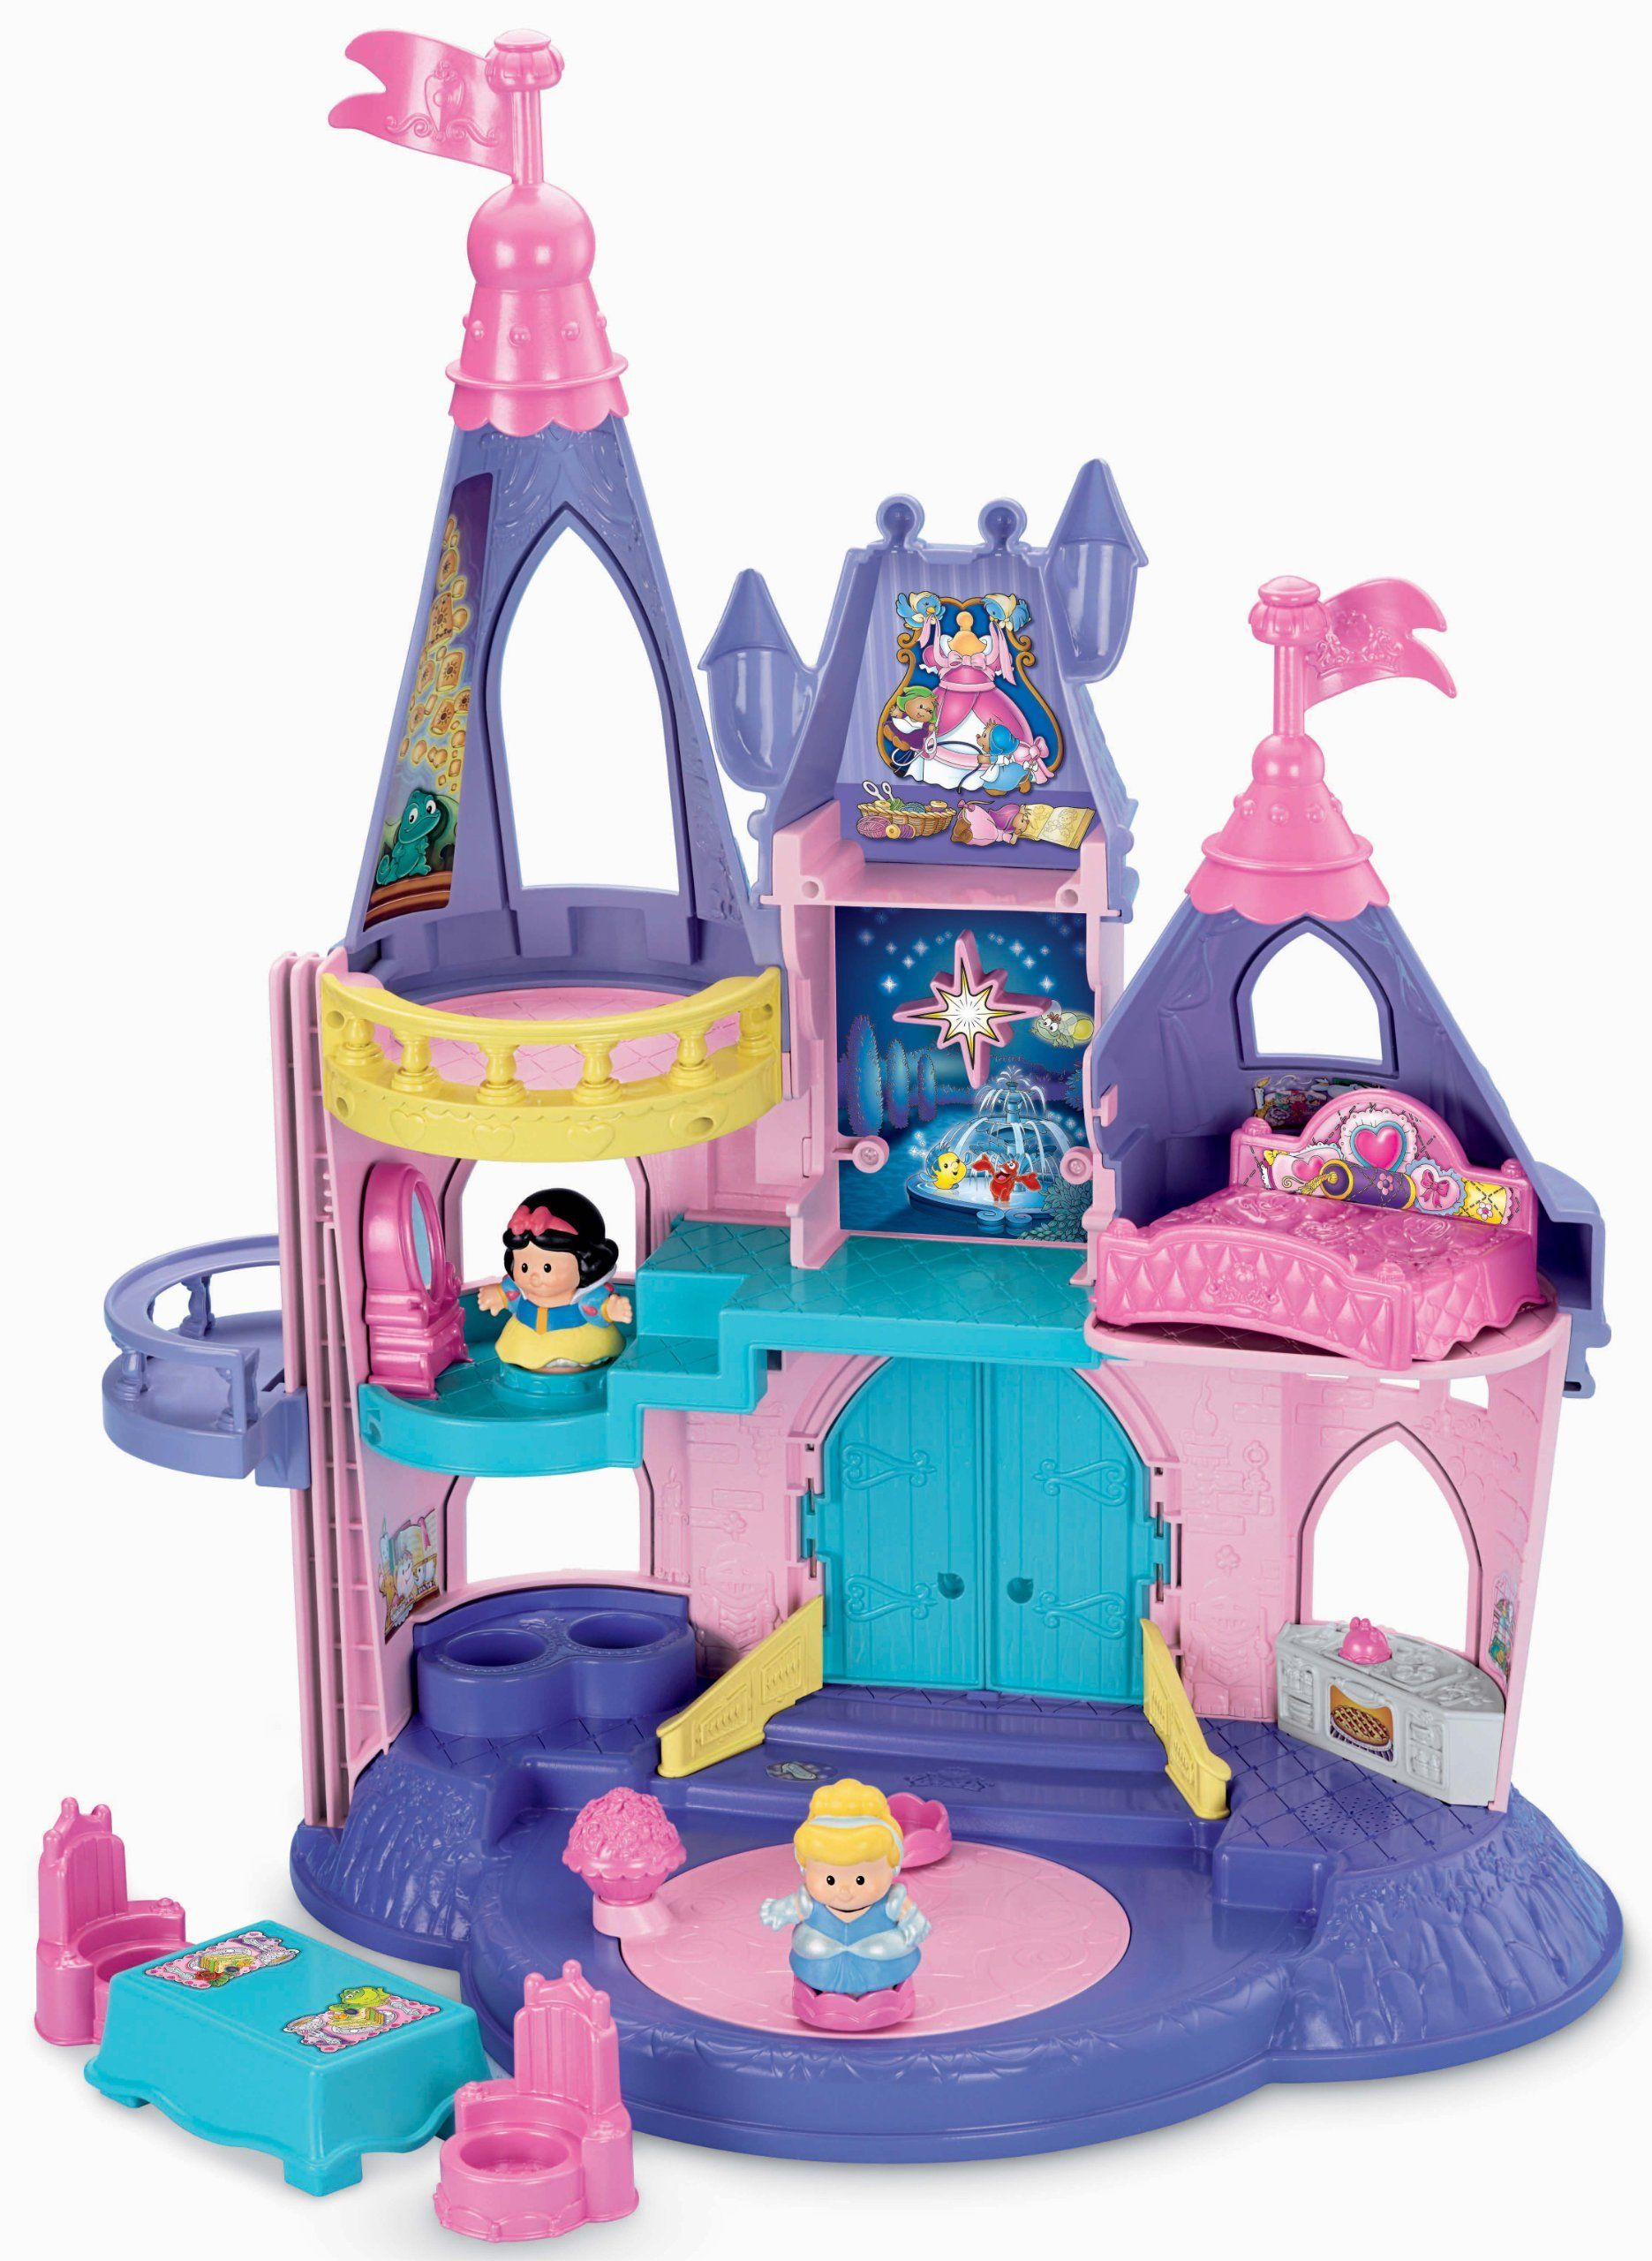 Best Toys For 1 Year Old Girls  1St Birthday  Toddler -9711